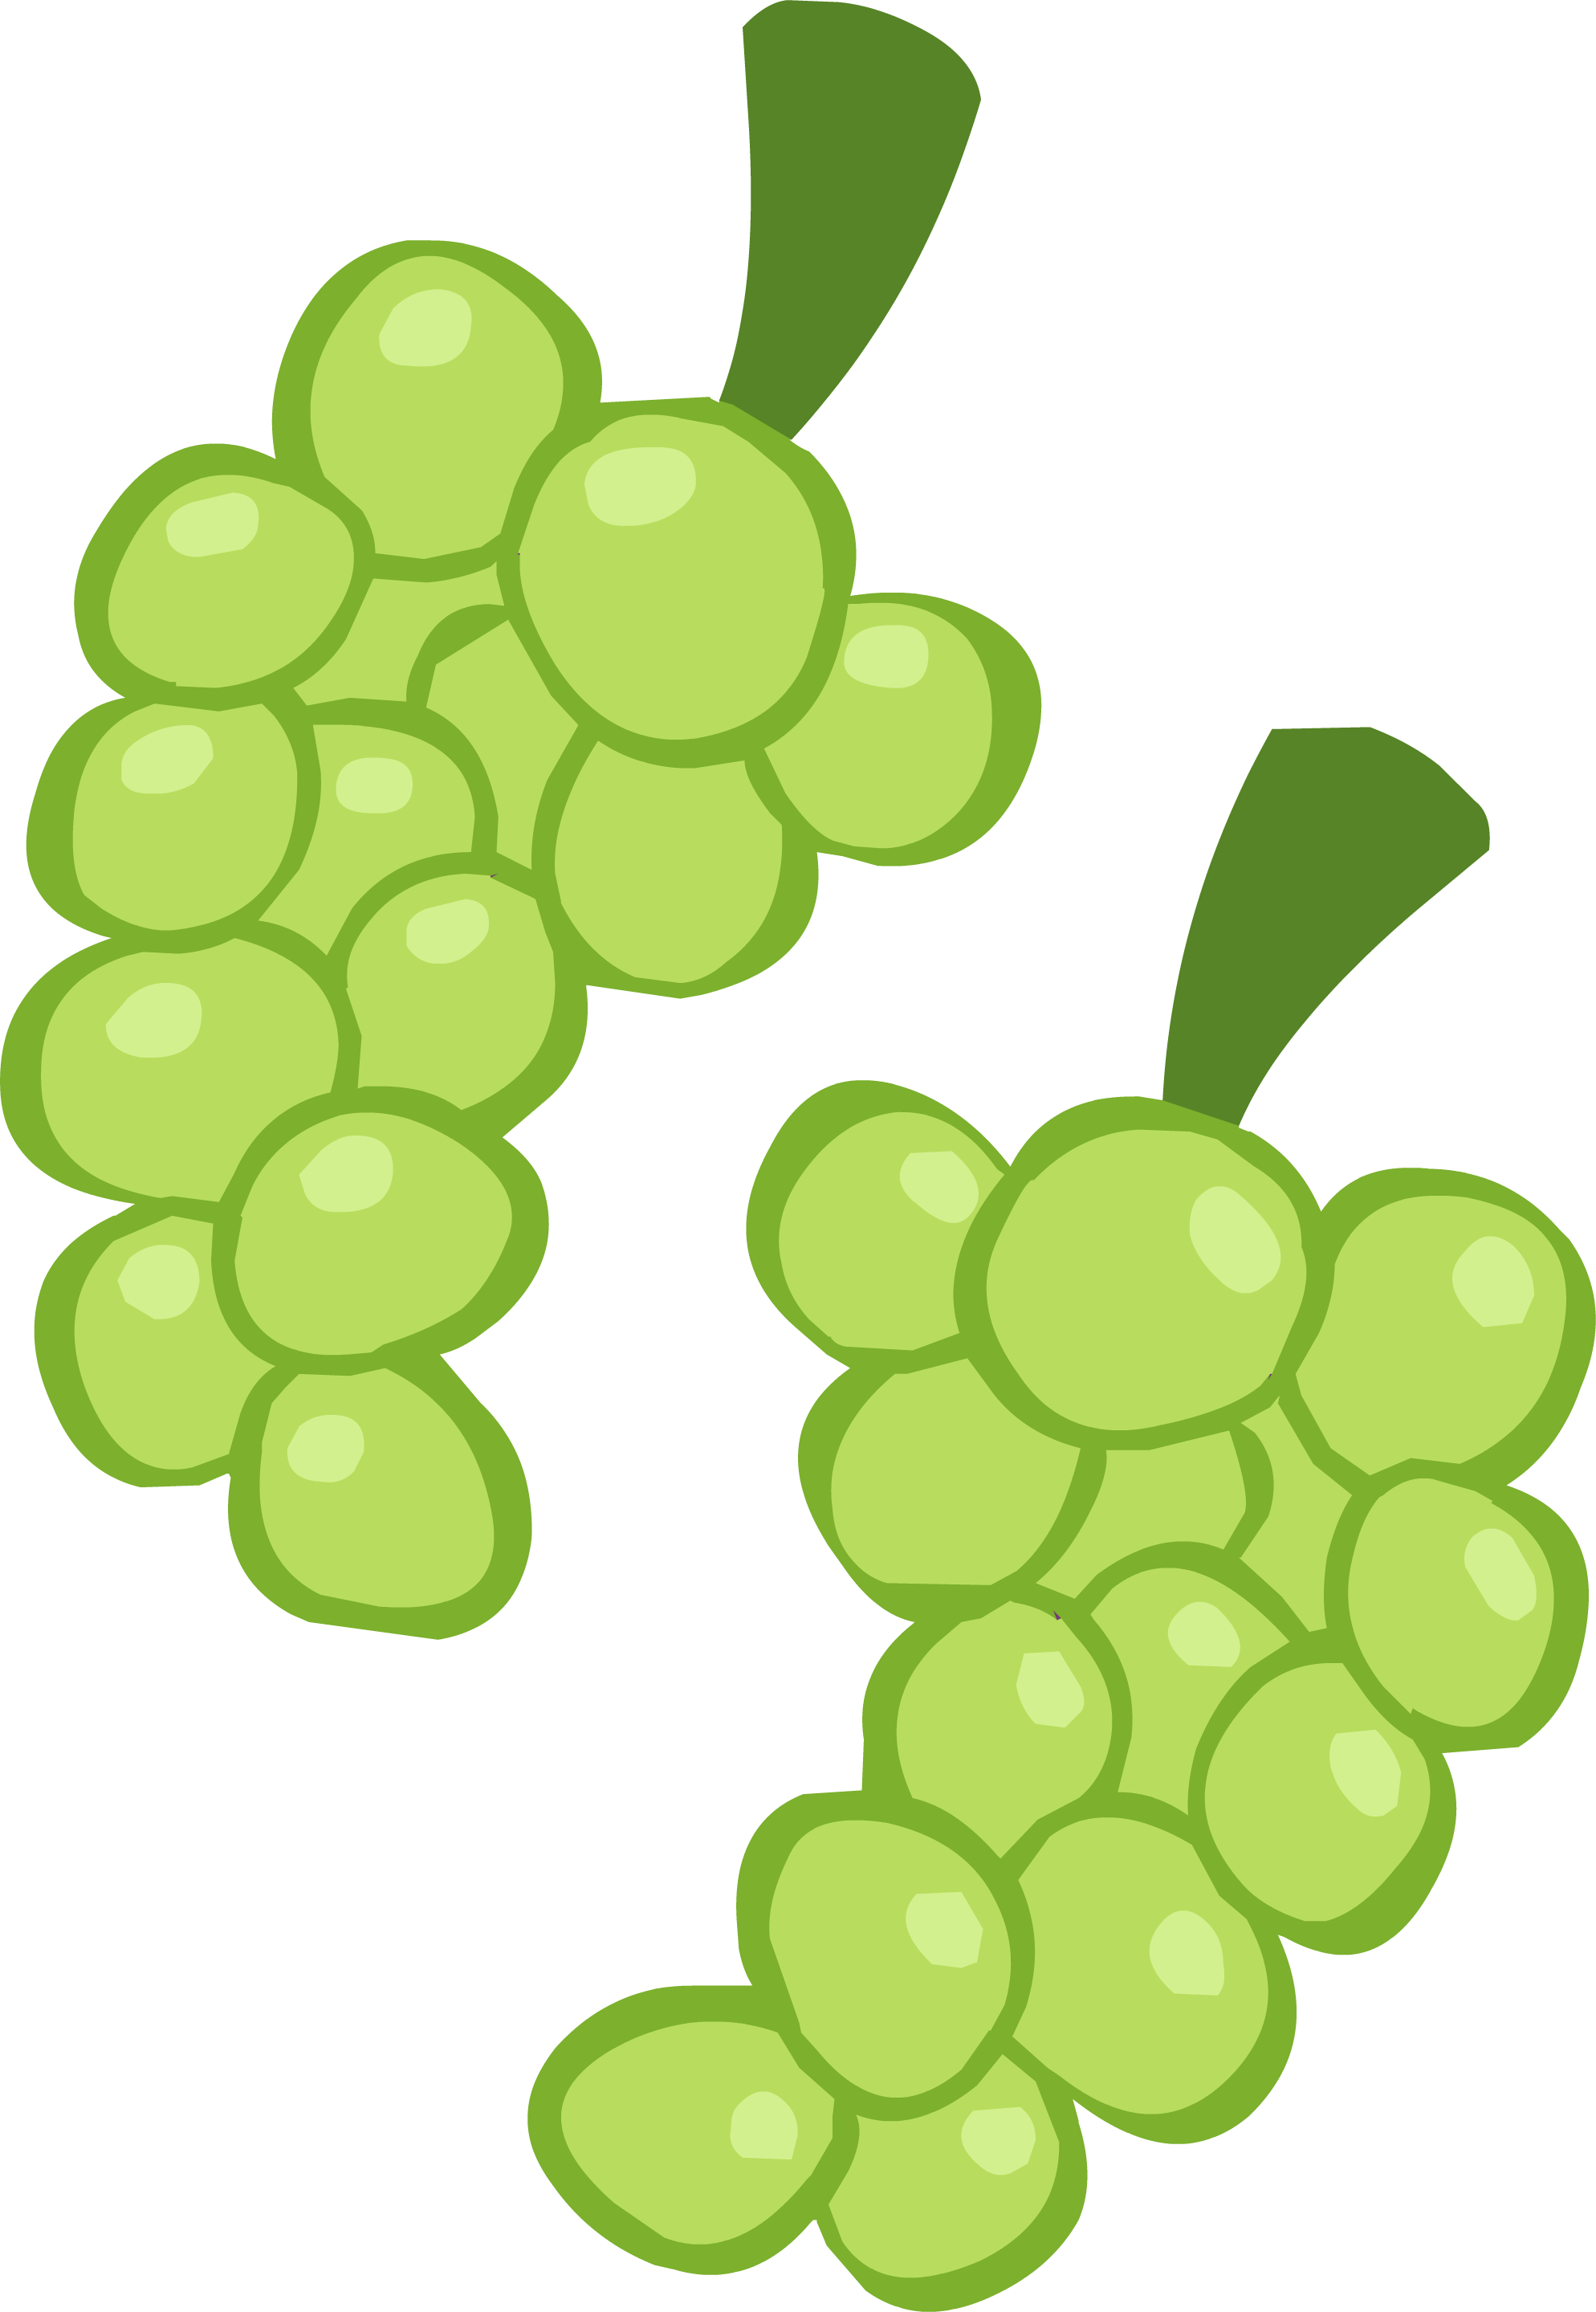 Image ponymaker grapes png. Clipart rose apple tree